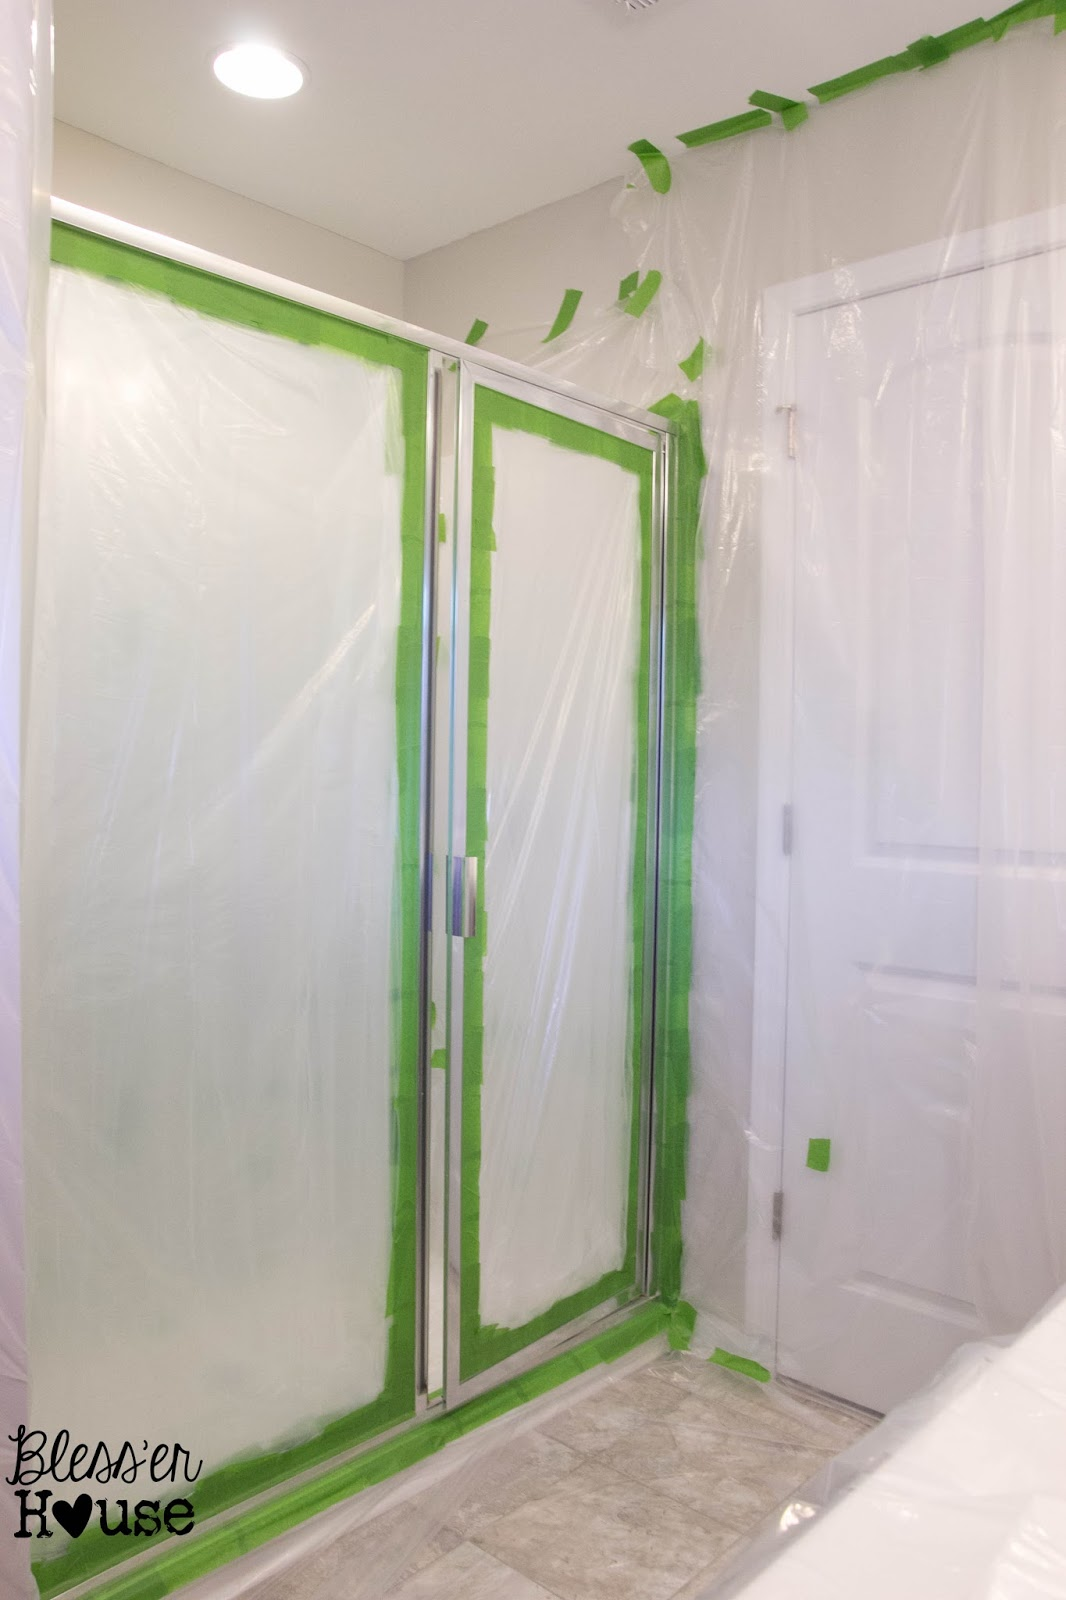 How Not To Paint A Shower Door And Fix Spray Mistakes